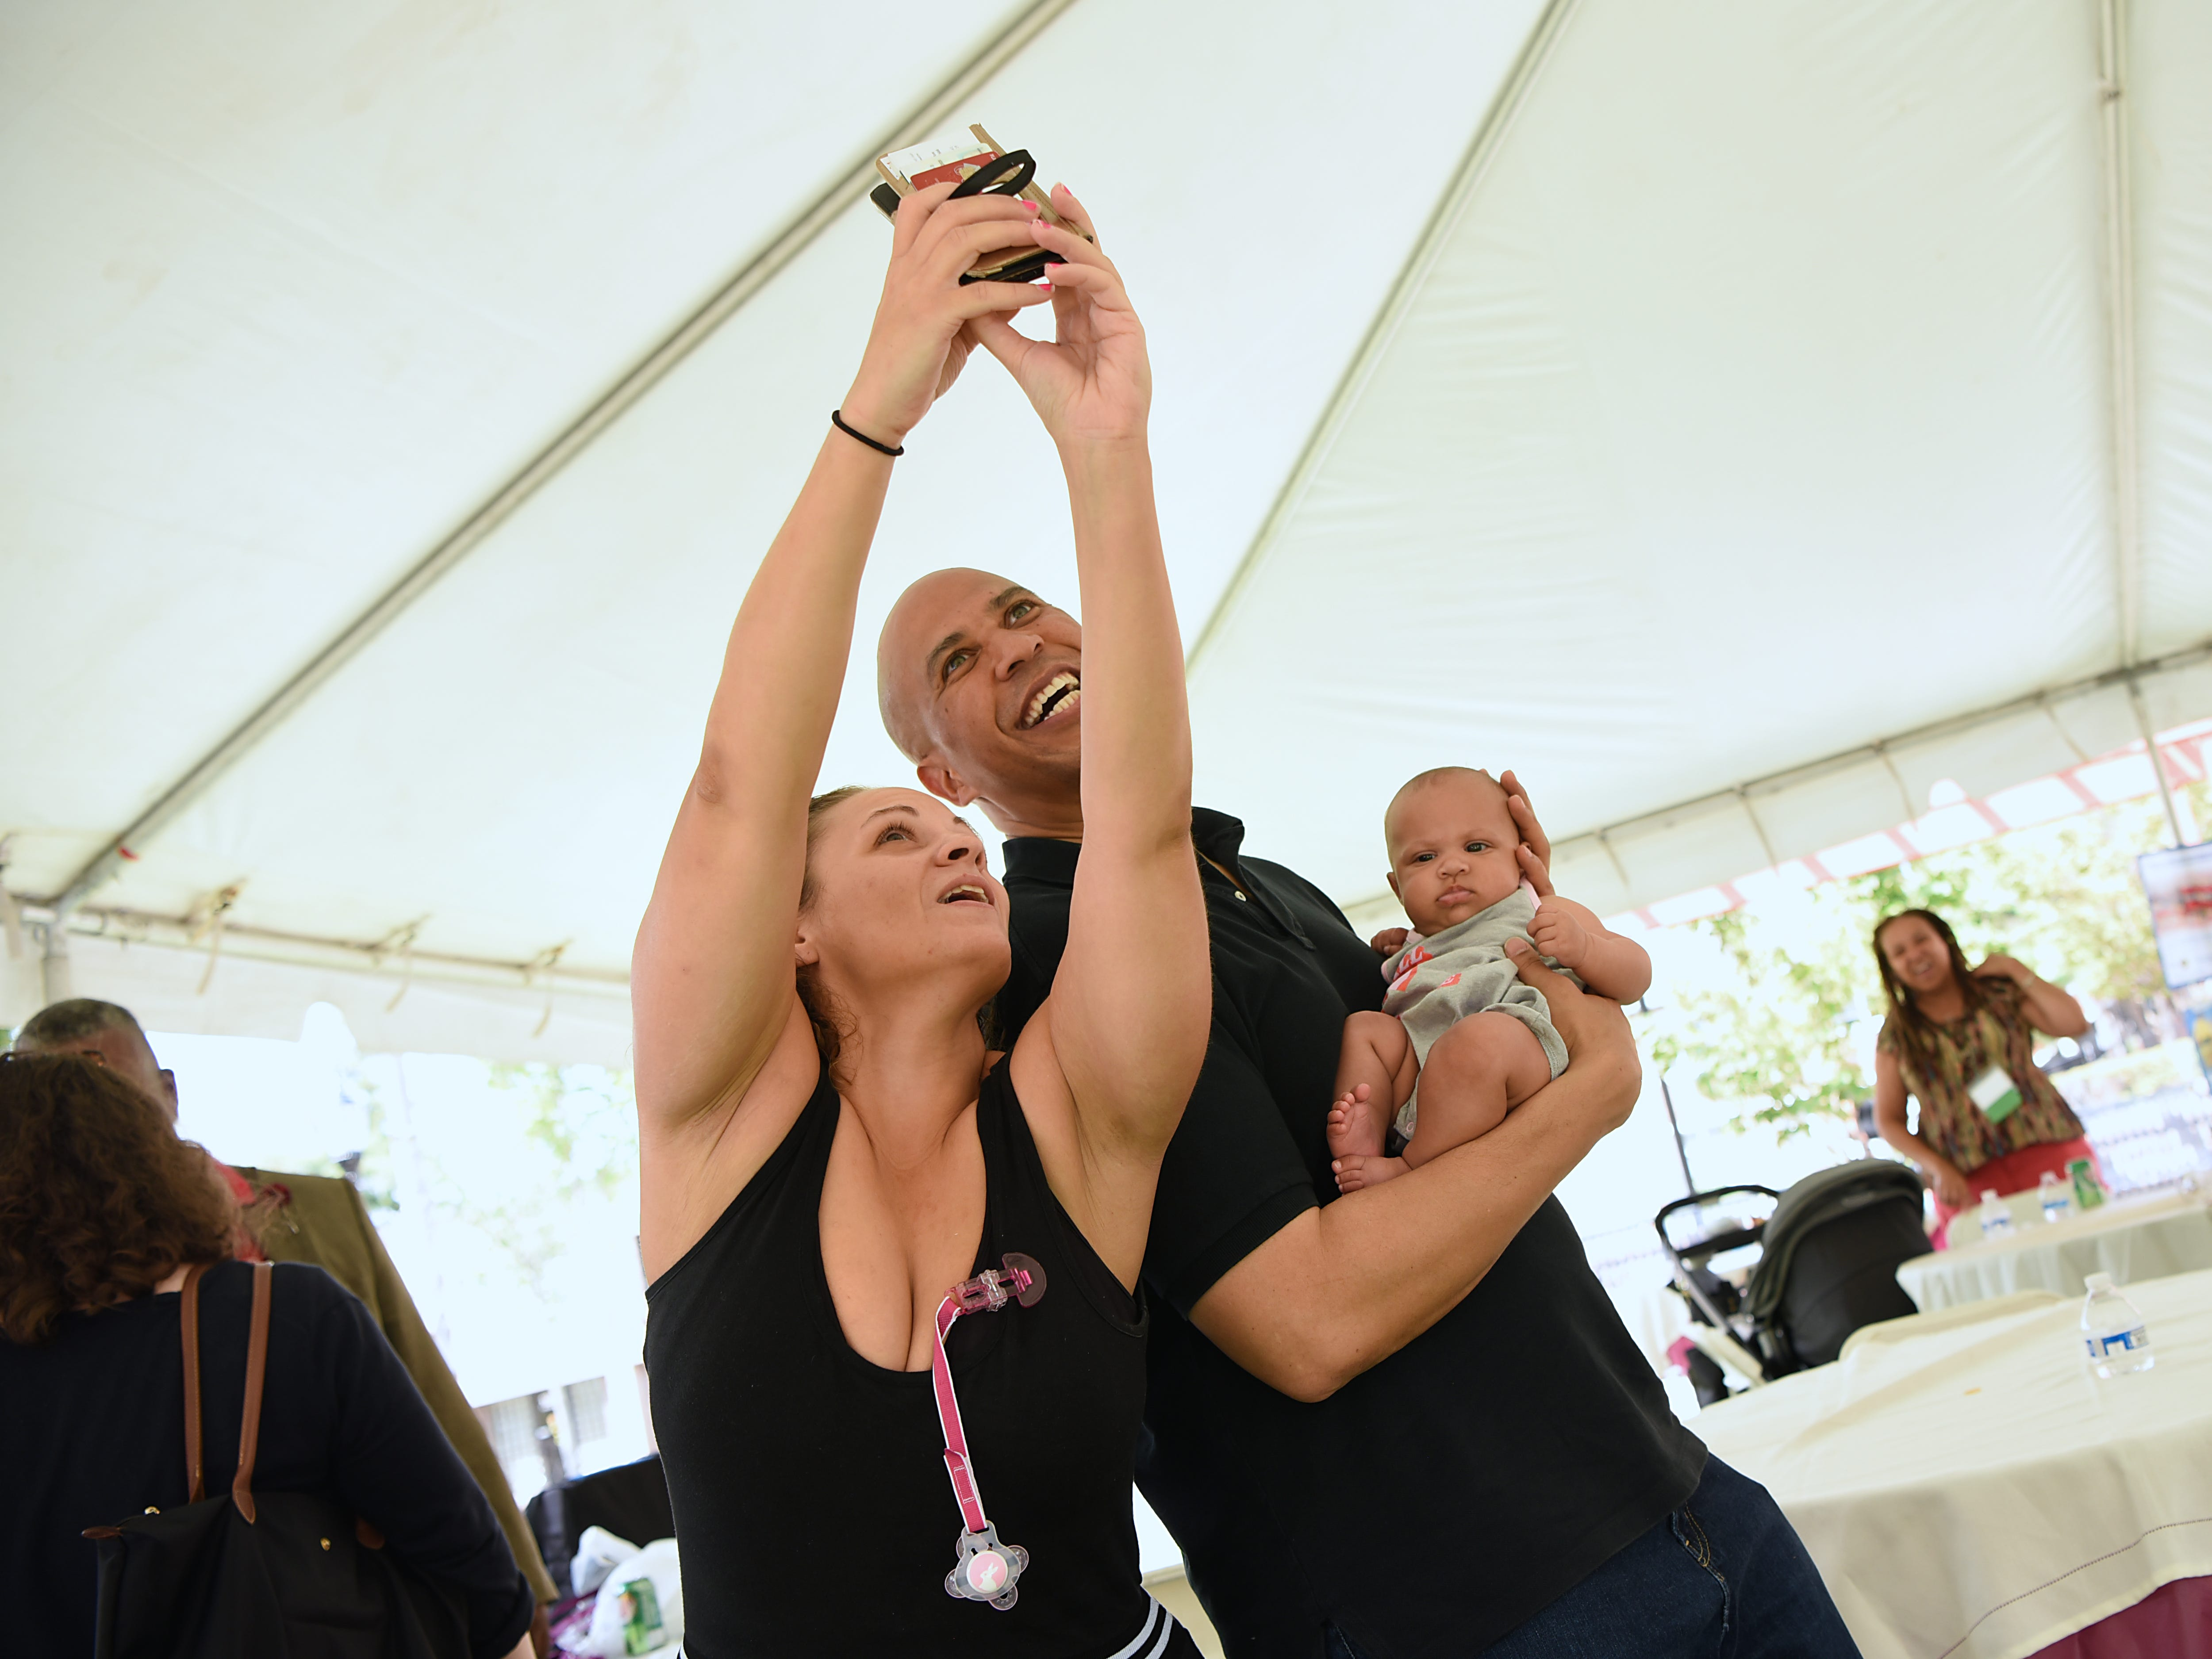 Barbara Castellano takes a selfie with Senator Cory Booker as he holds her baby, Jordyn Castellano, during the Fair Housing Council of Northern New Jersey picnic in Hackensack on Friday August 10, 2018.